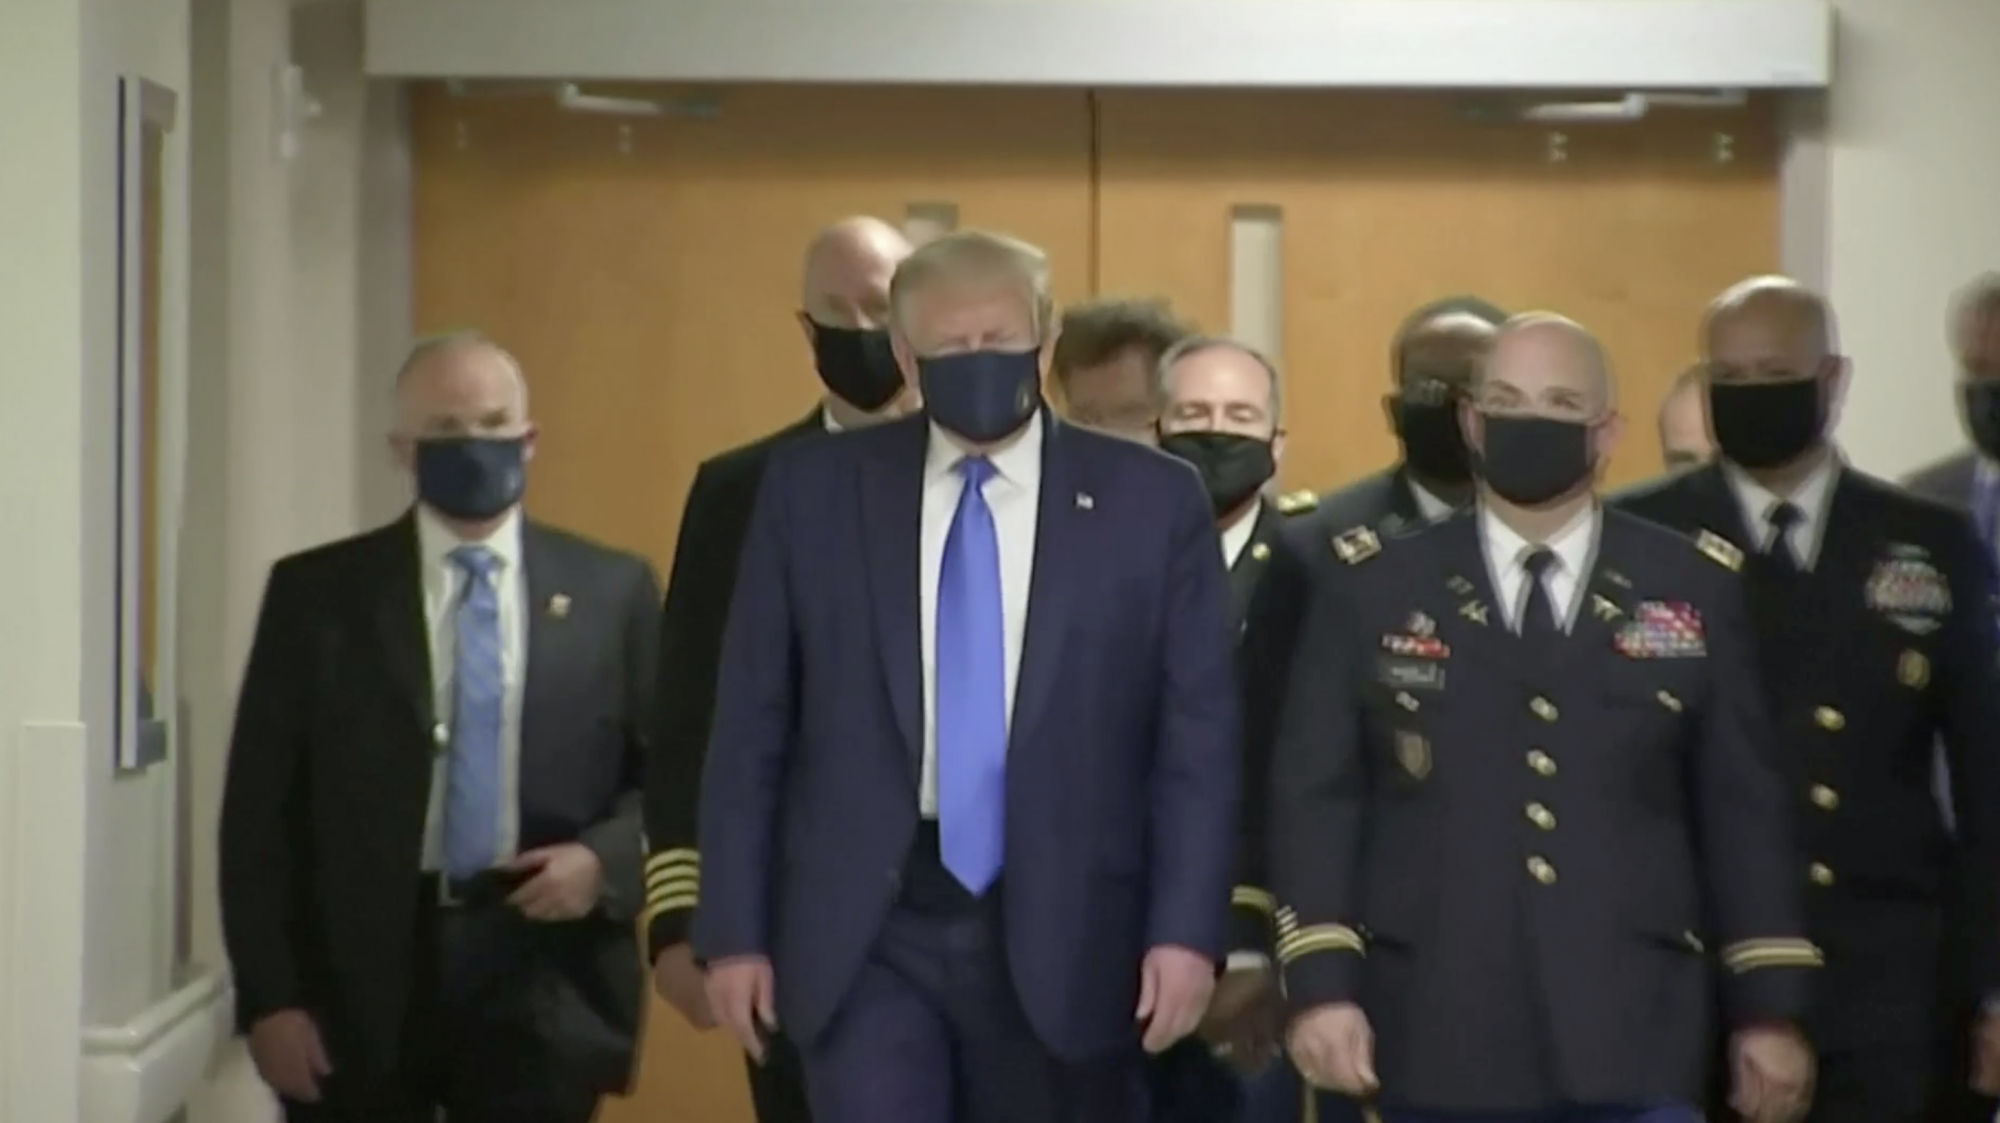 Donald Trump wears a face mask for the first time in public – as Florida confirms 15,000 new cases of coronavirus - channel 4